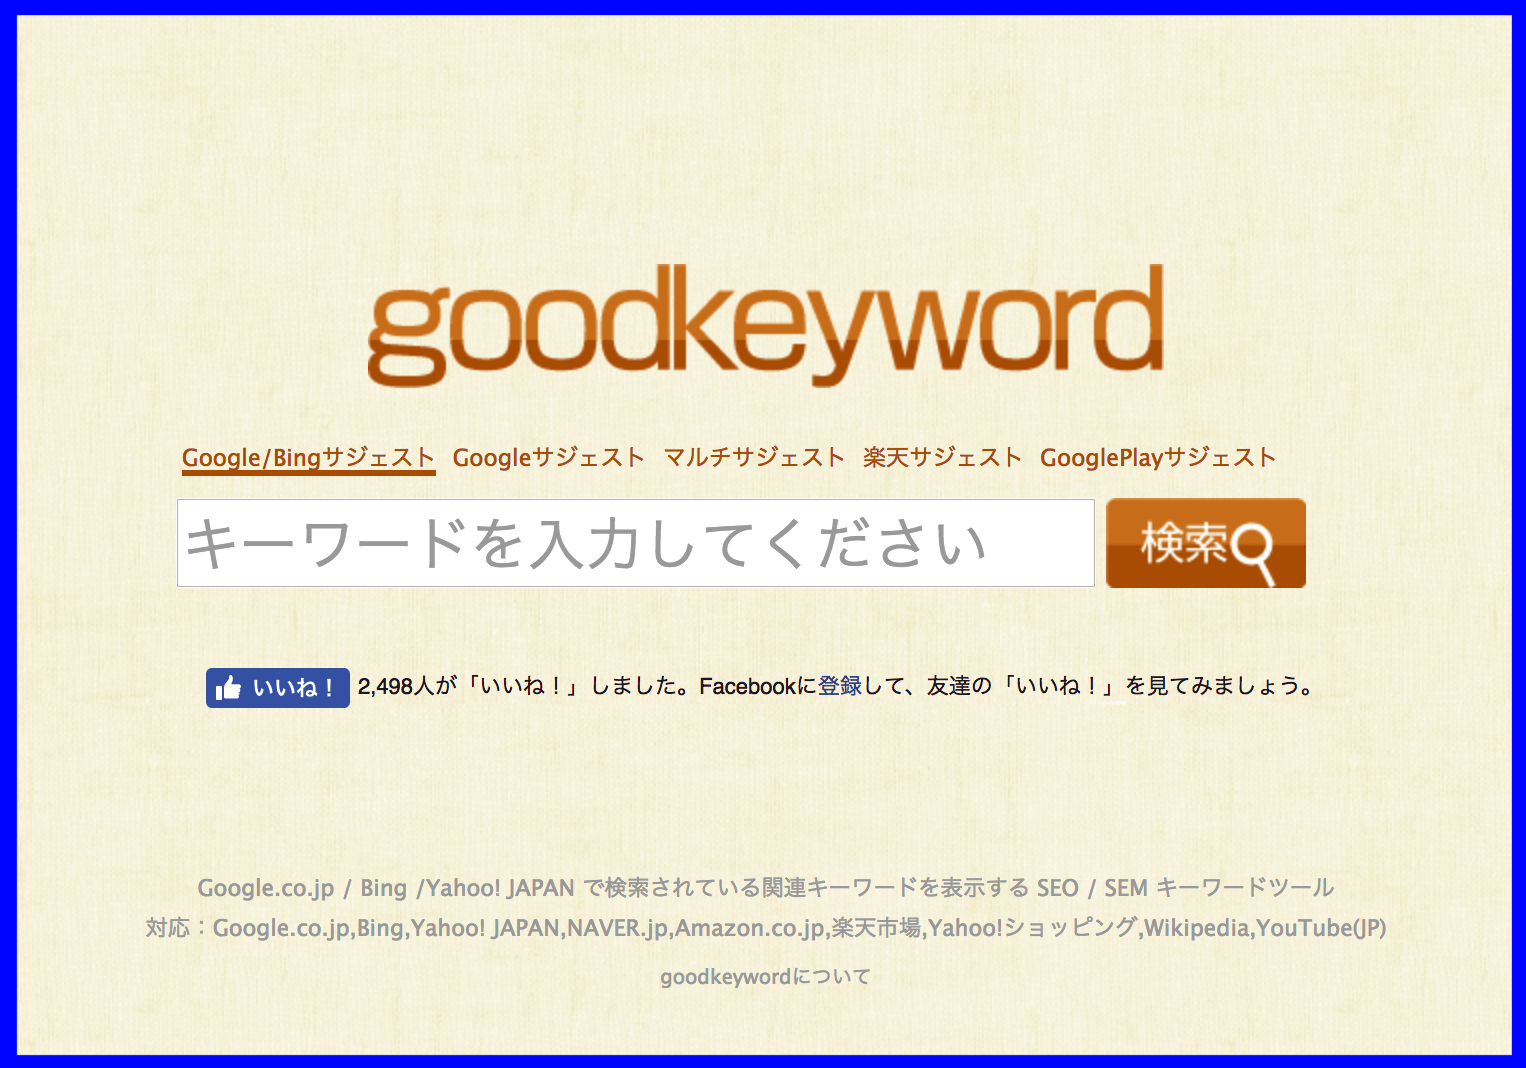 goodkeyword①の写真